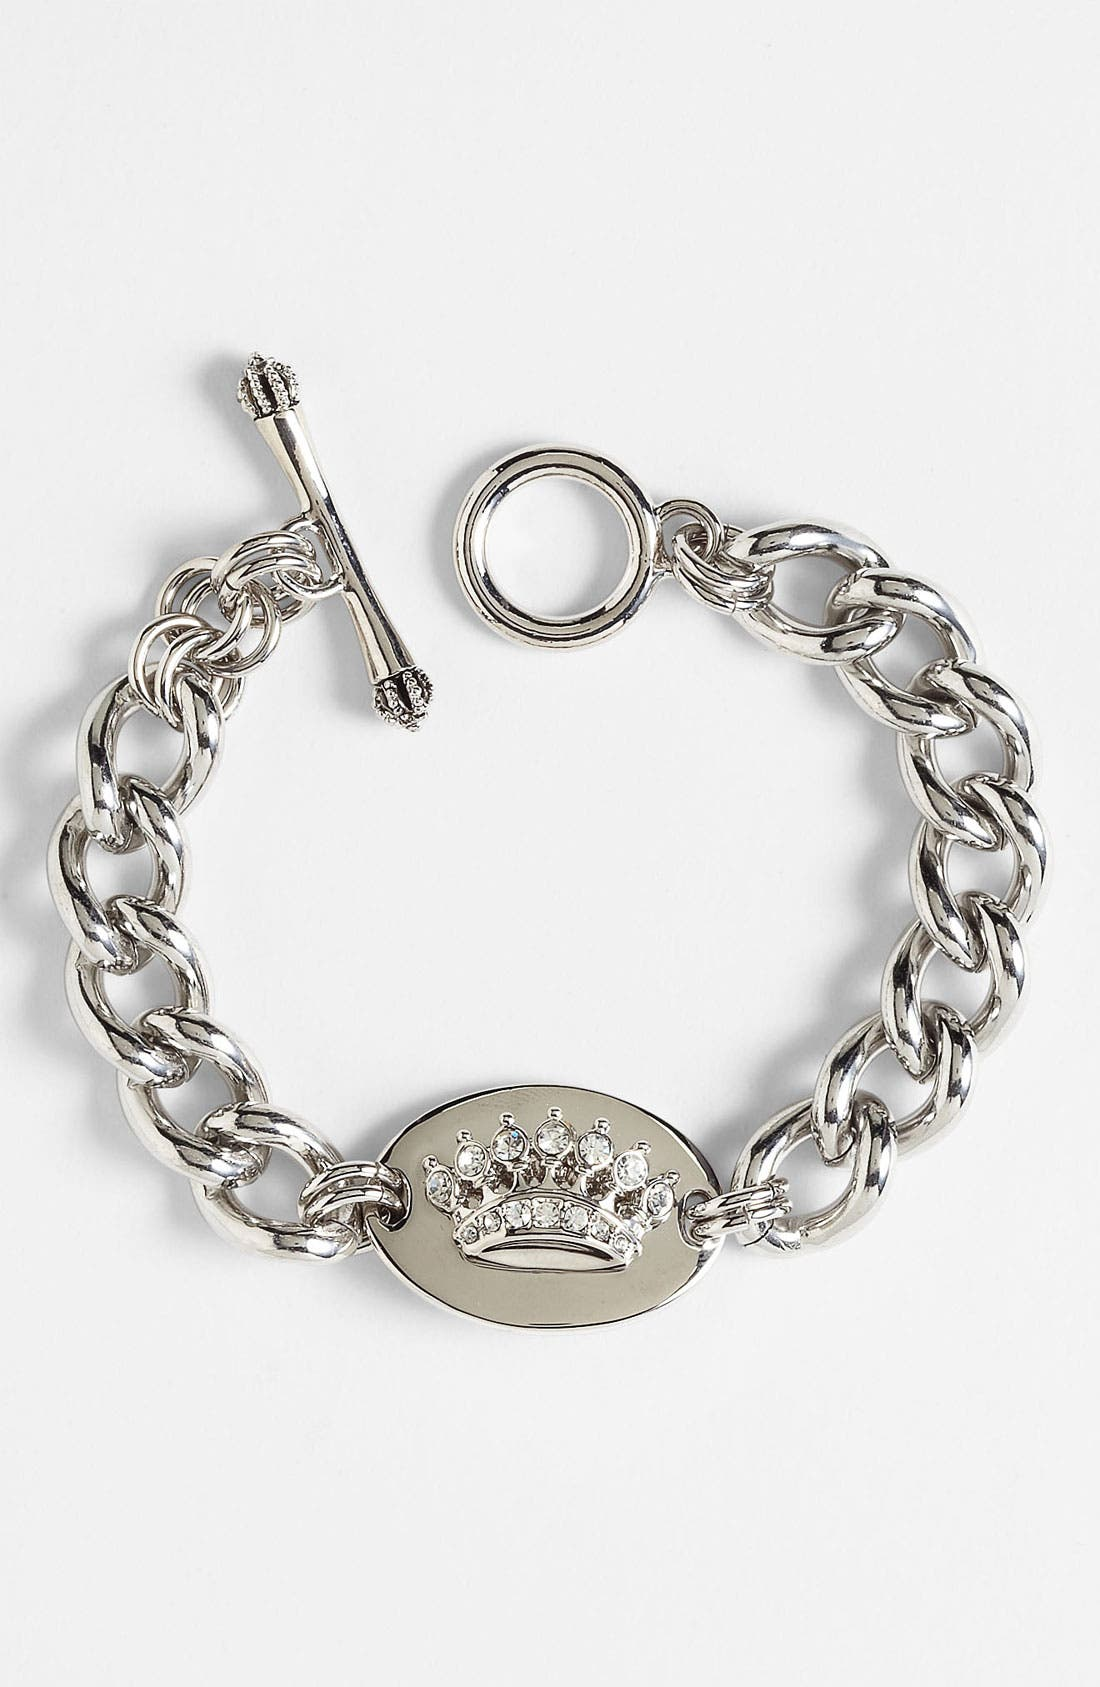 Main Image - Juicy Couture 'Holiday Icons' ID Bracelet